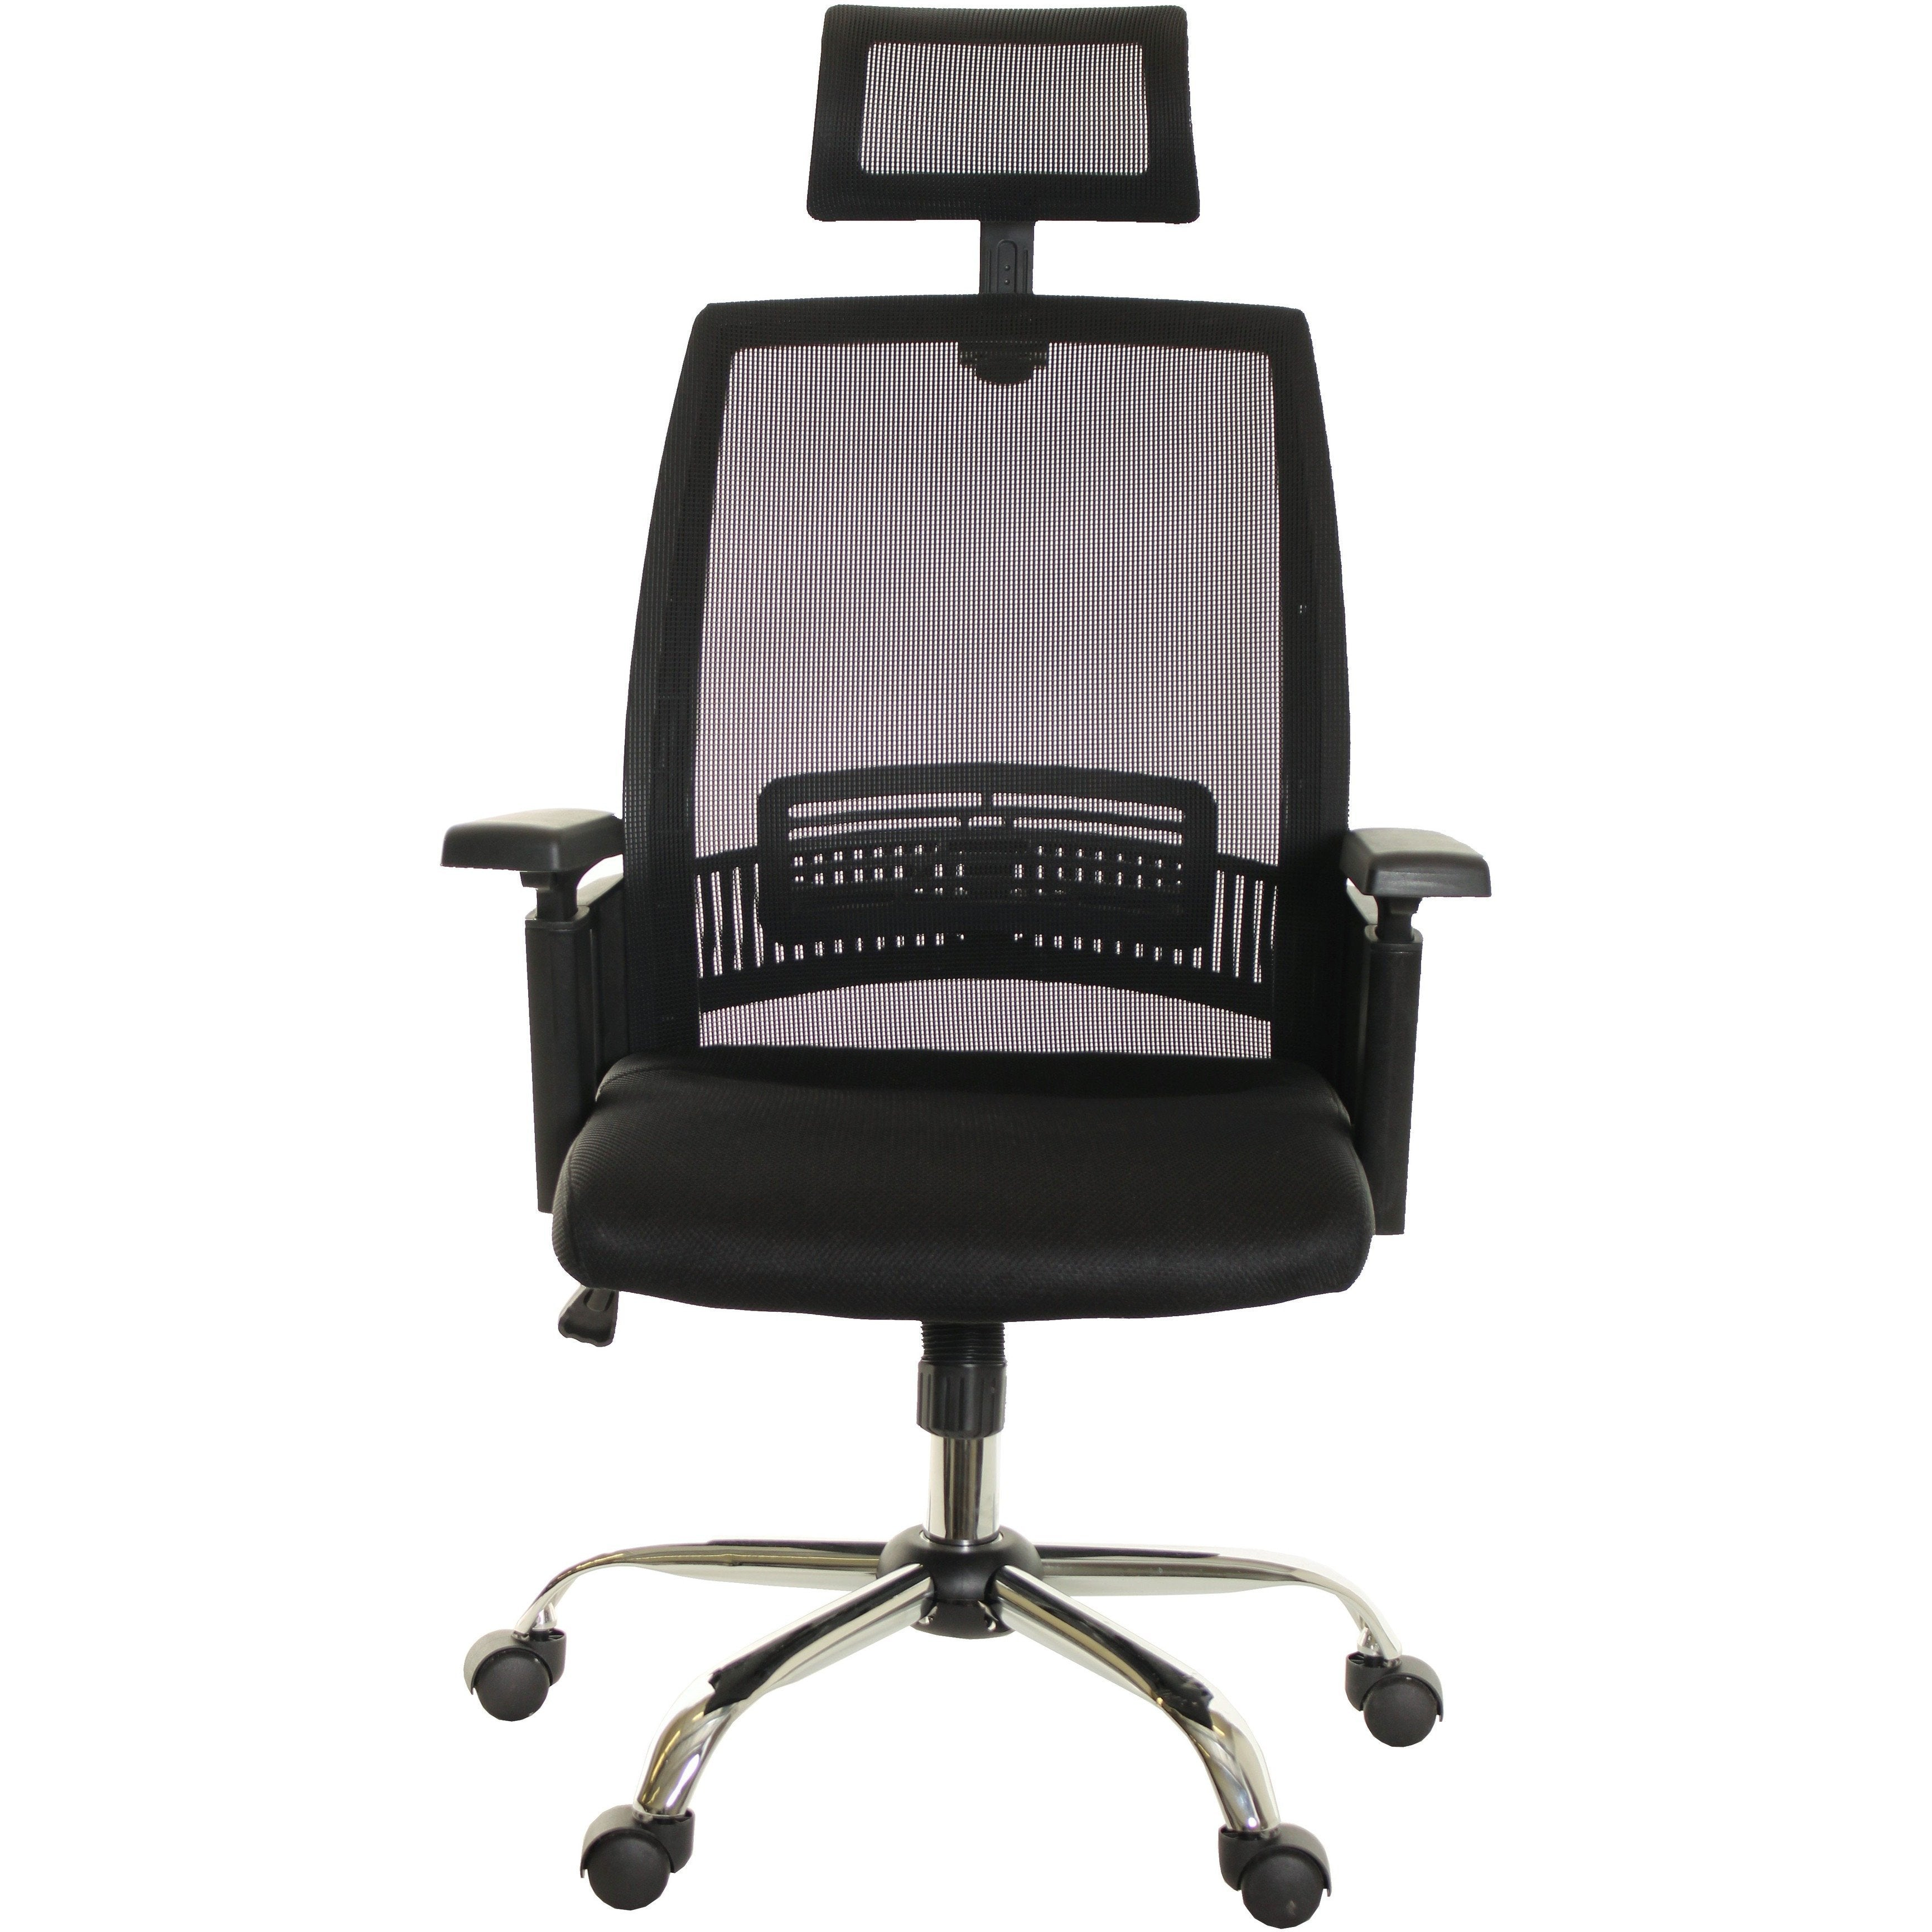 Mesh Task Chair fice High Back Black with Headrest & Metal base